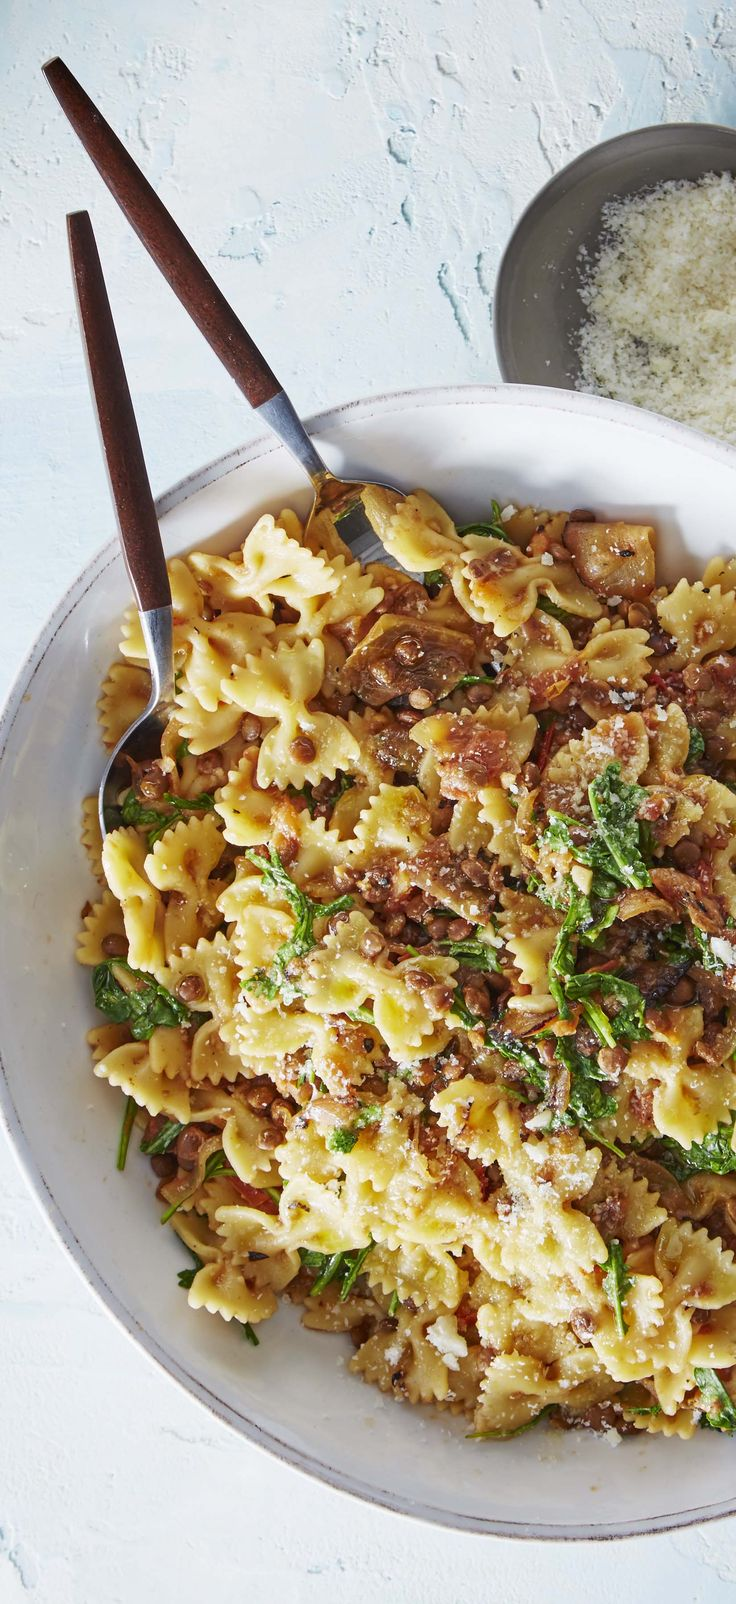 The bowtie pasta may be dressed for a formal occasion, but this recipe is perfect for a casual weeknight meal! Caramelized onions, fresh tomatoes, earthy lentils, and bright arugula come together to make a luscious pasta sauce. Top it off with a sprinkle of Parmesan and a drizzle of olive oil. Sign up for Martha & Marley Spoon meal-kit deliveries today!